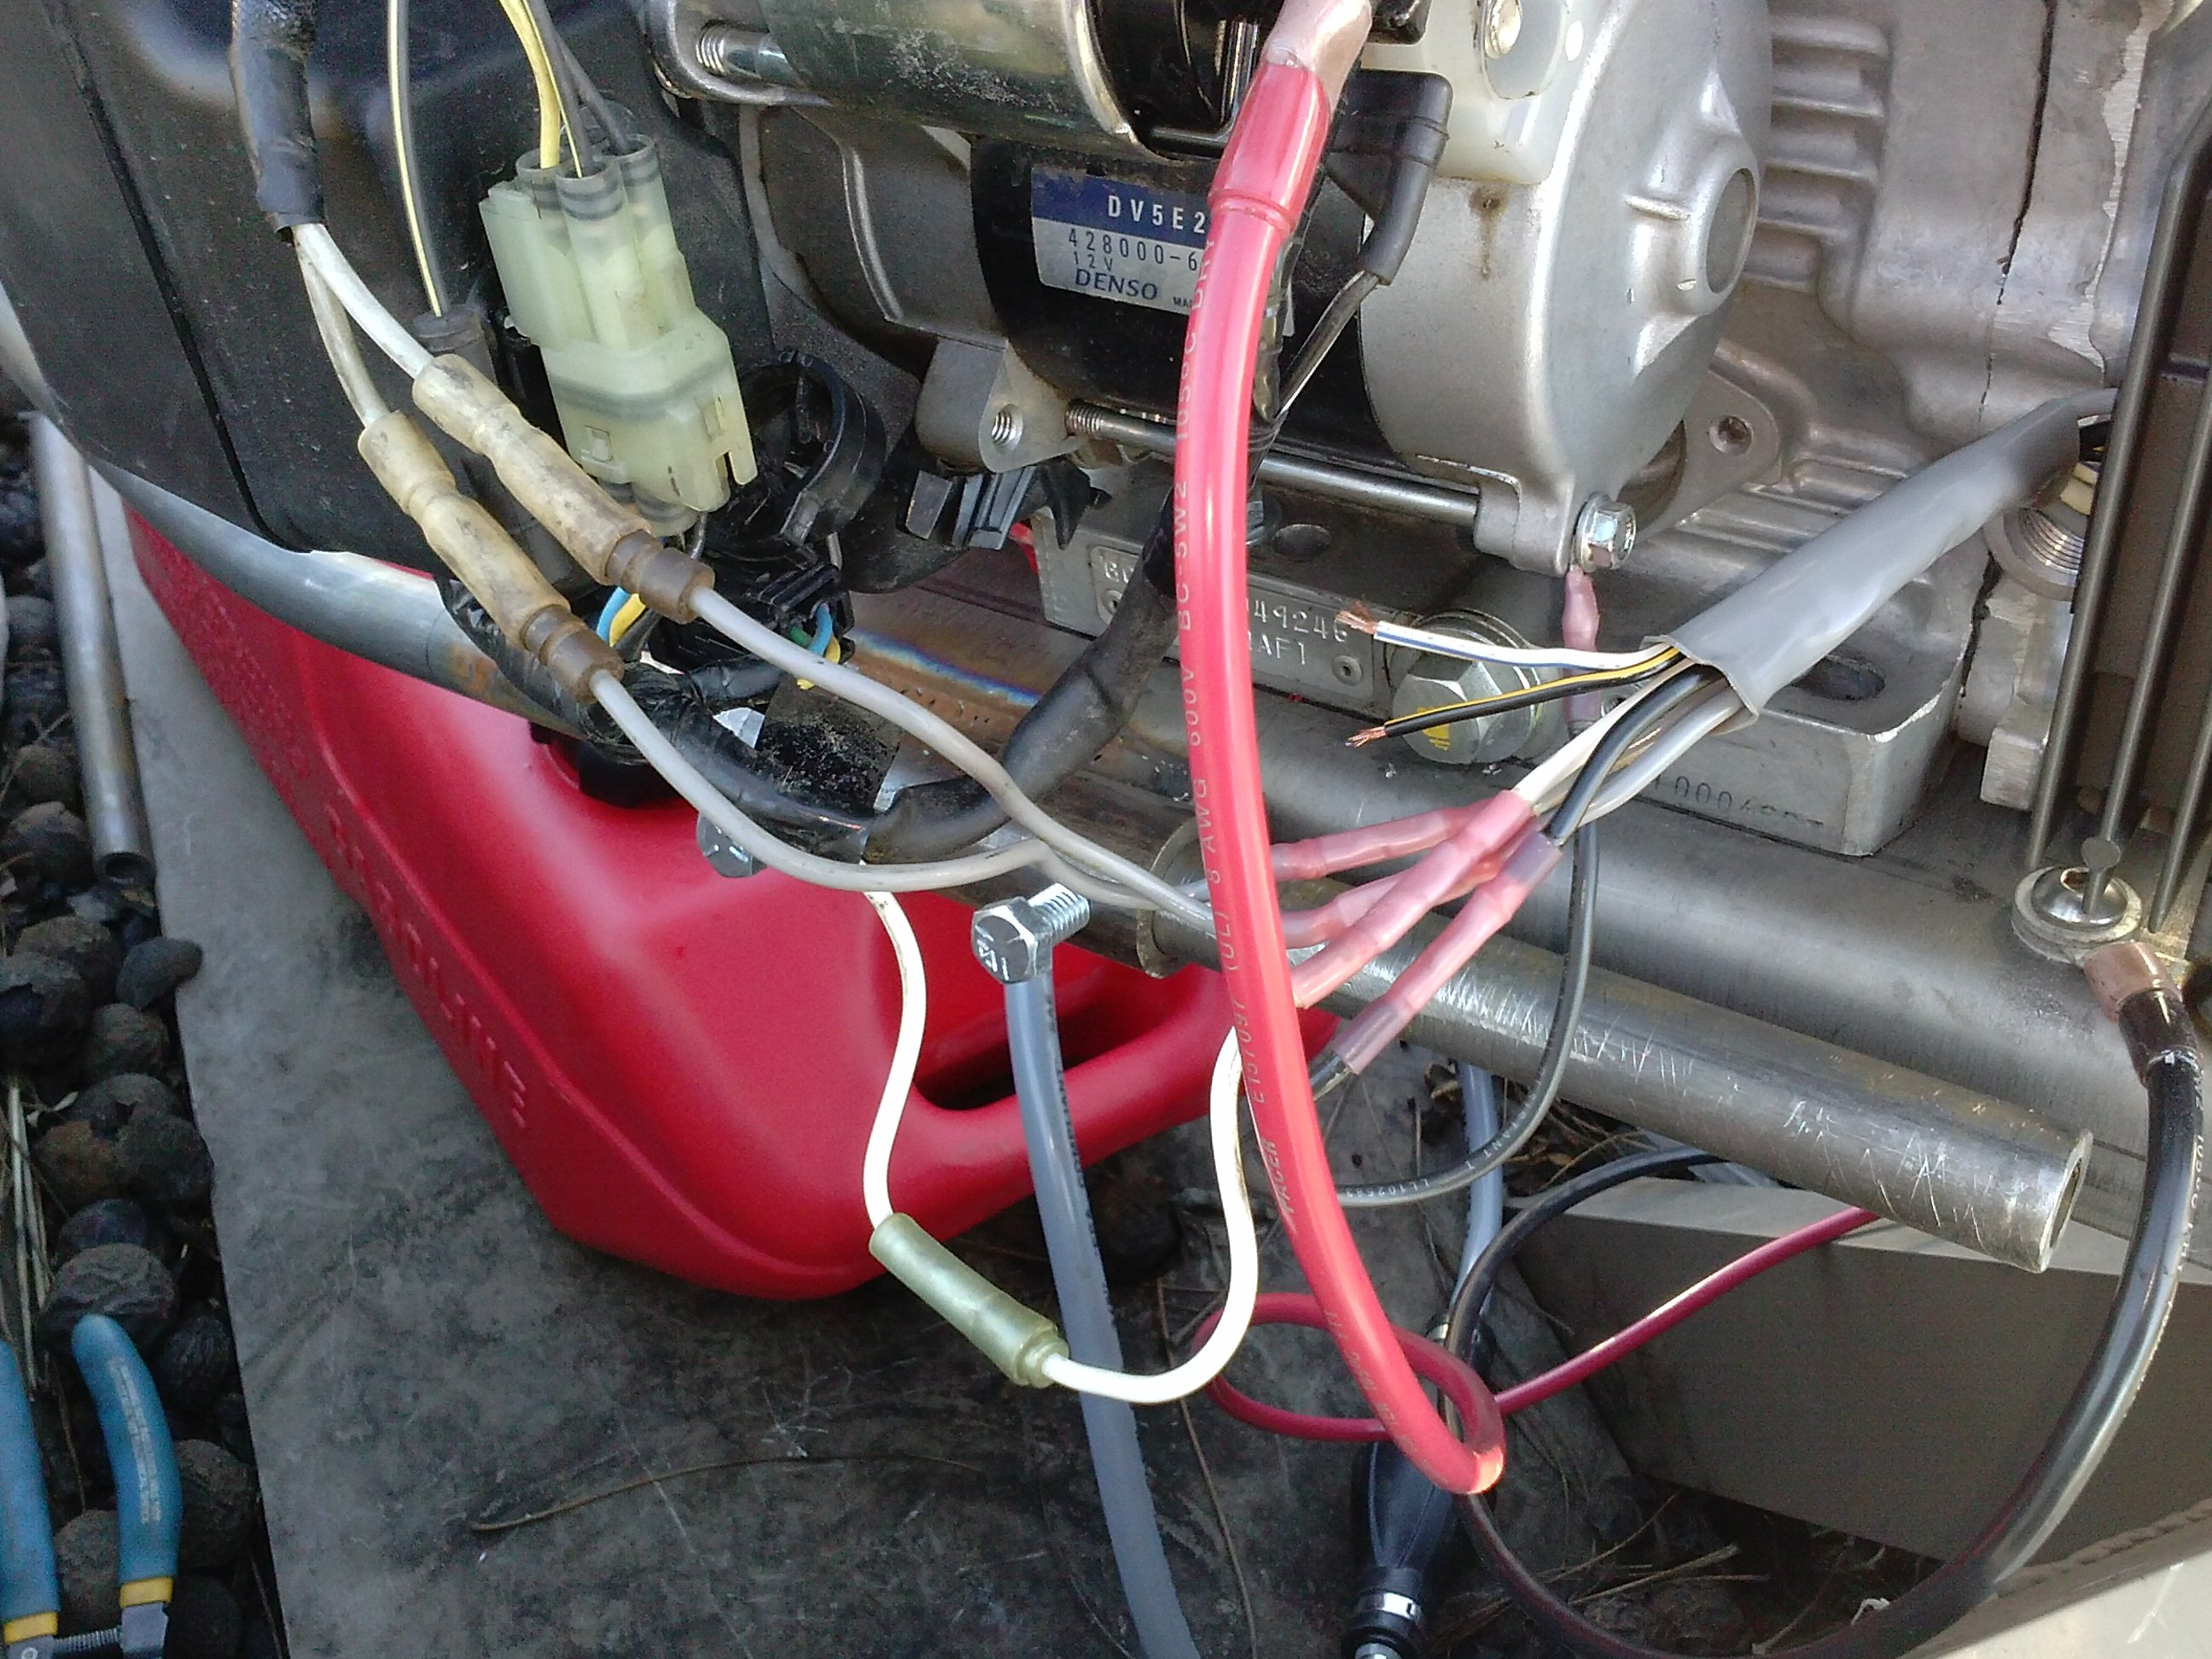 Honda Gx270 Electric Start Wiring Diagram Modern Design Of Gx340 Starter 11 Hp Library Rh 25 Soccercup Starnberg De Kit